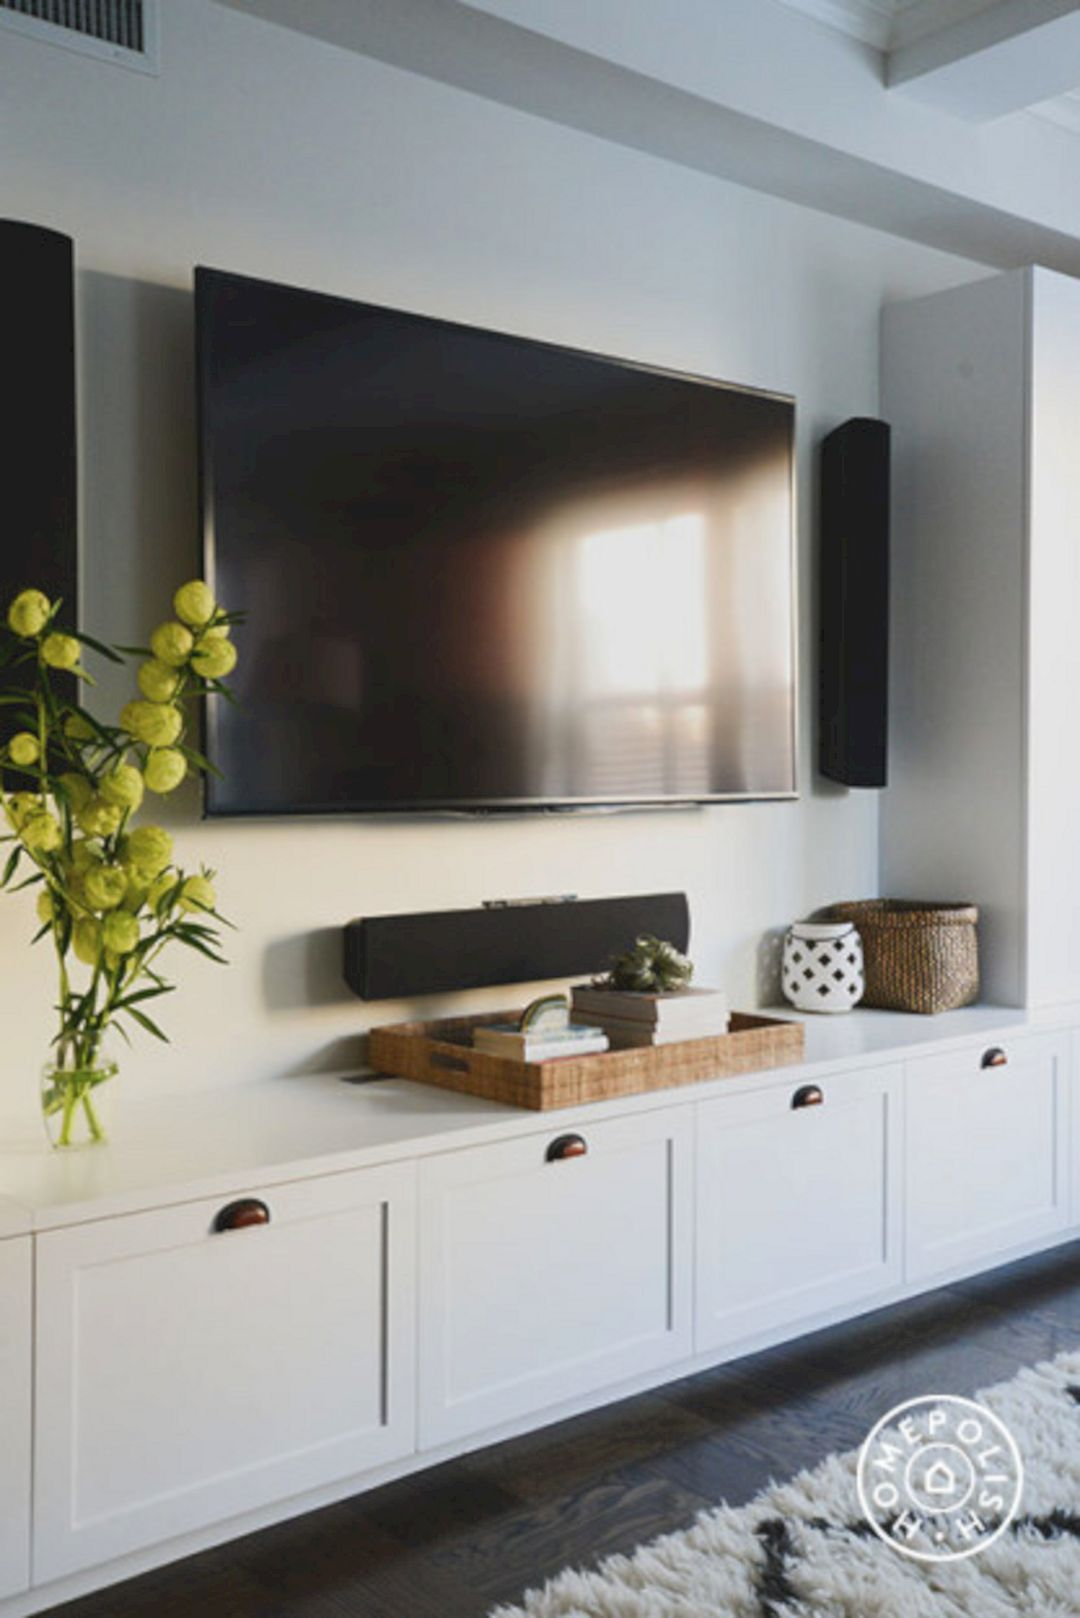 living room wall cabinets built%0A Cool     Best Friendly Living Room Inspirations You Have To See https